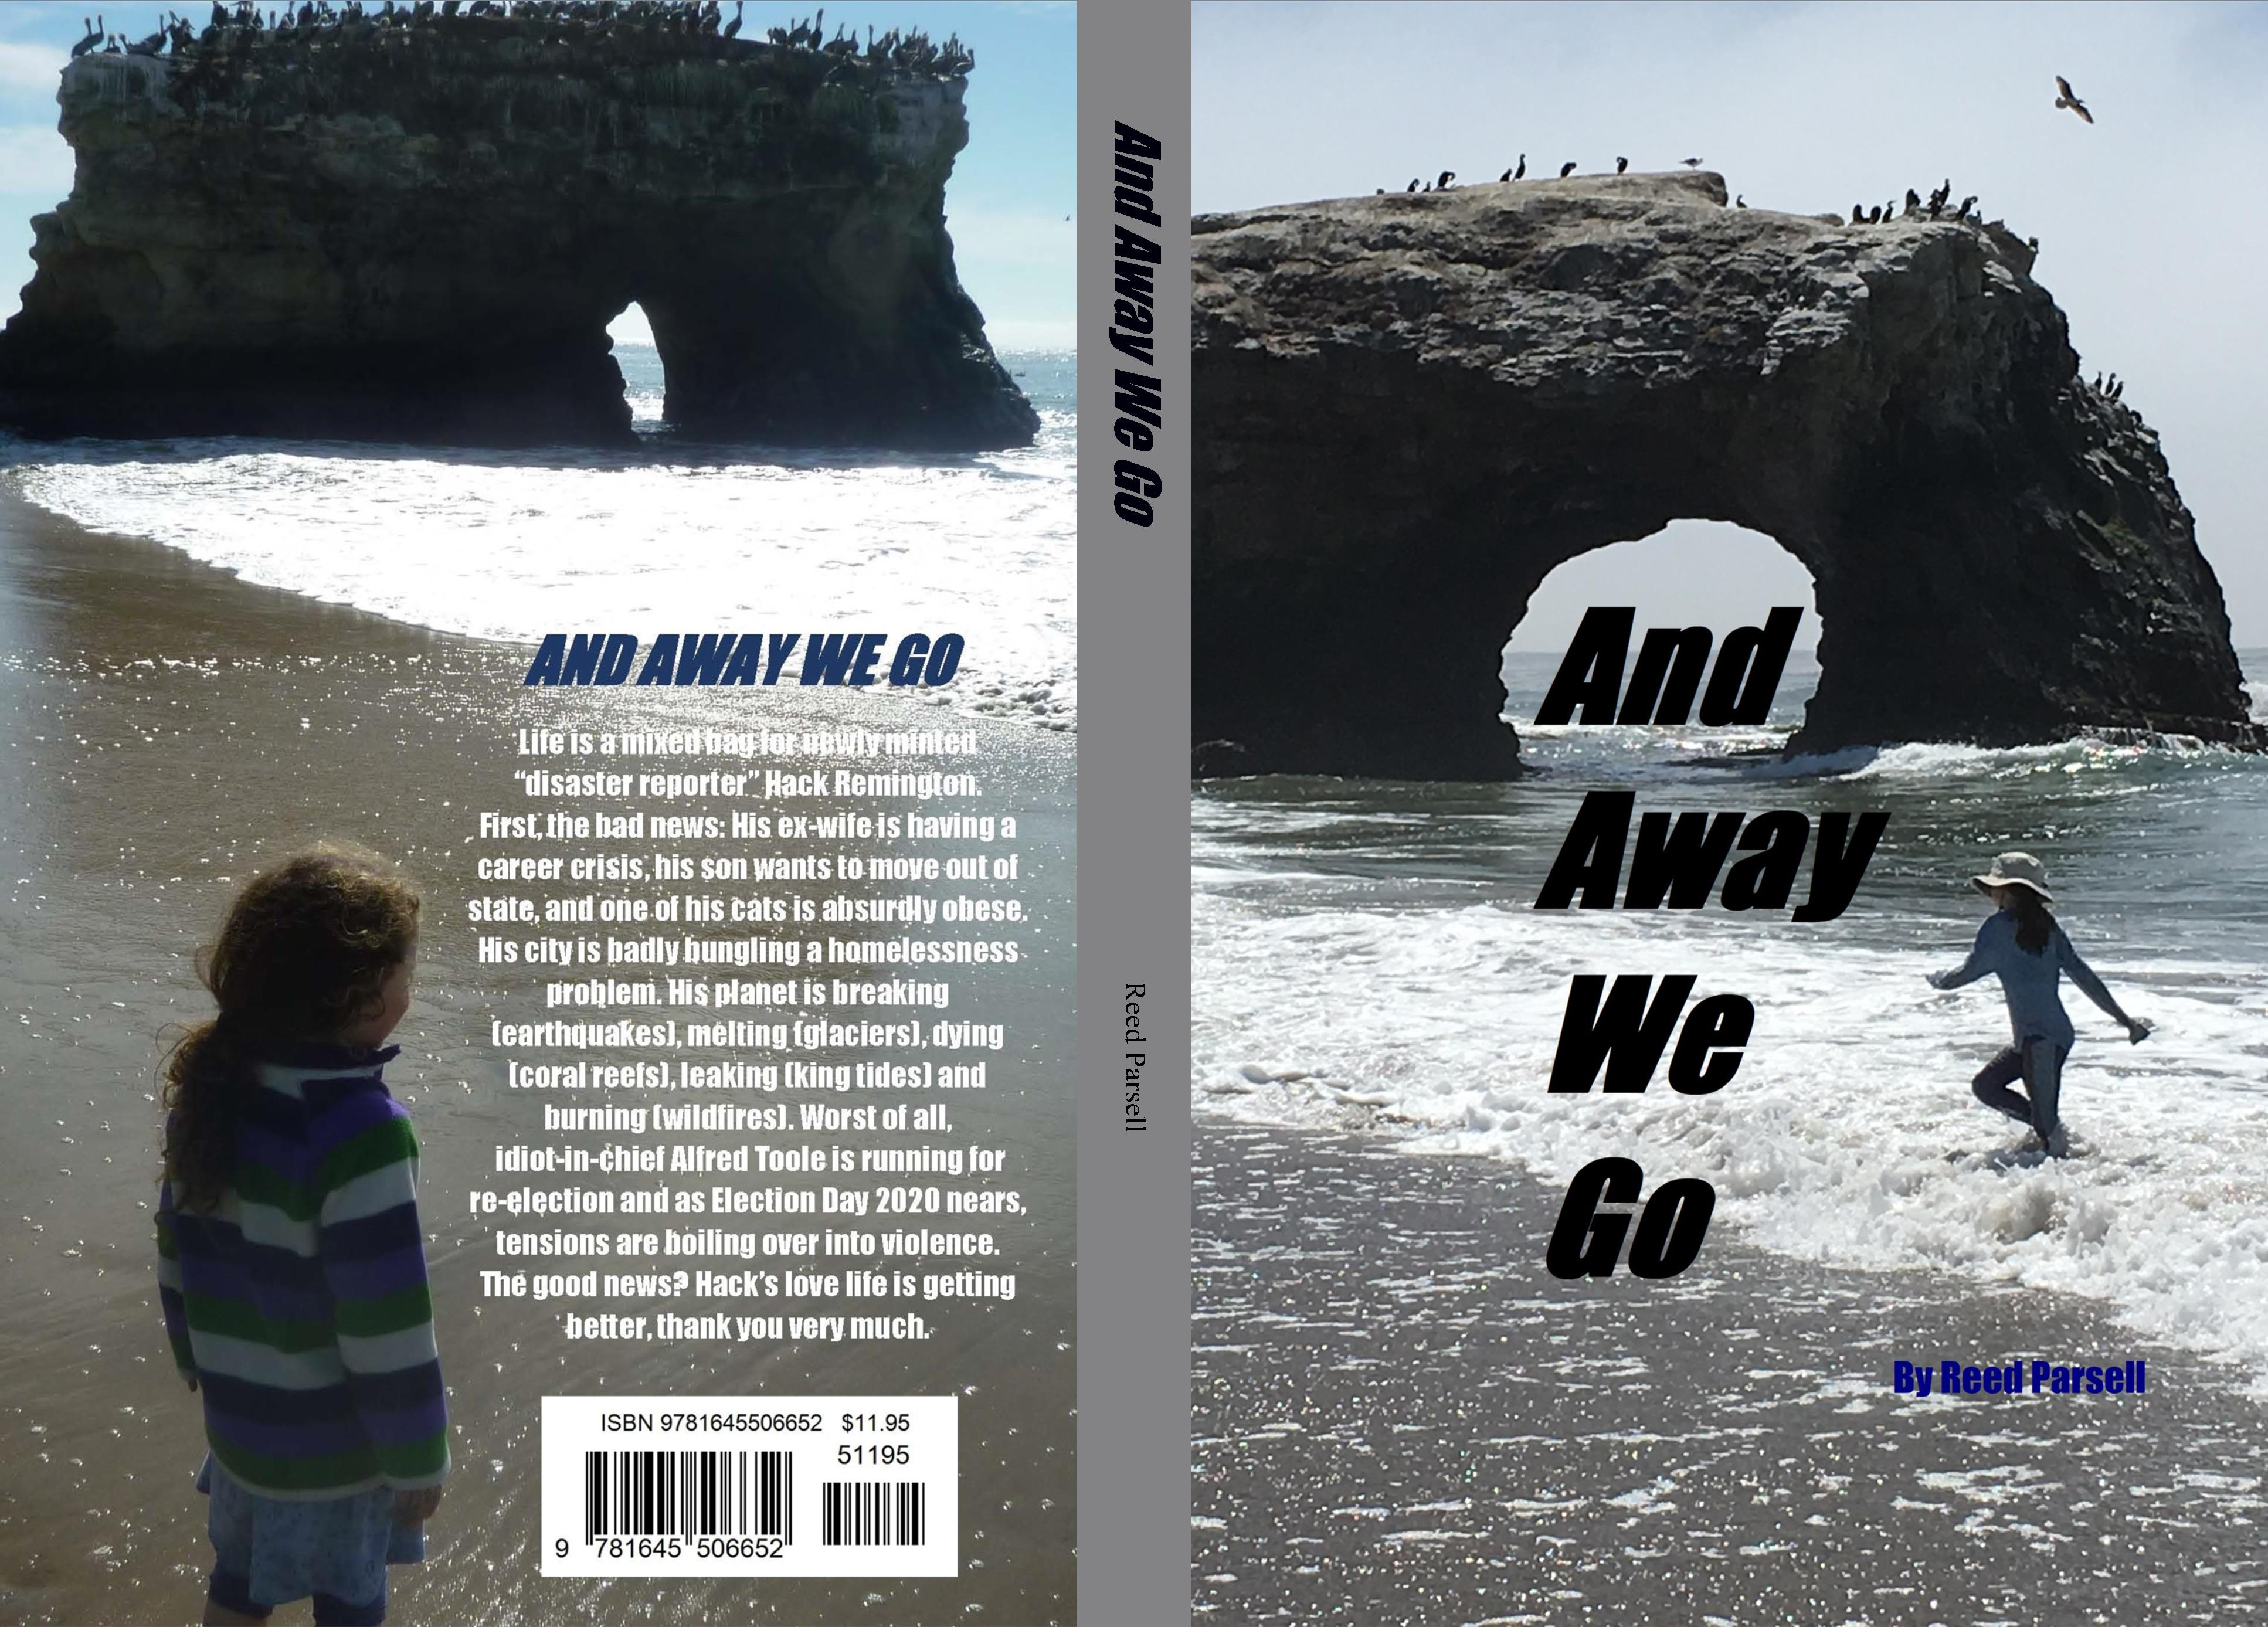 And Away We Go cover image